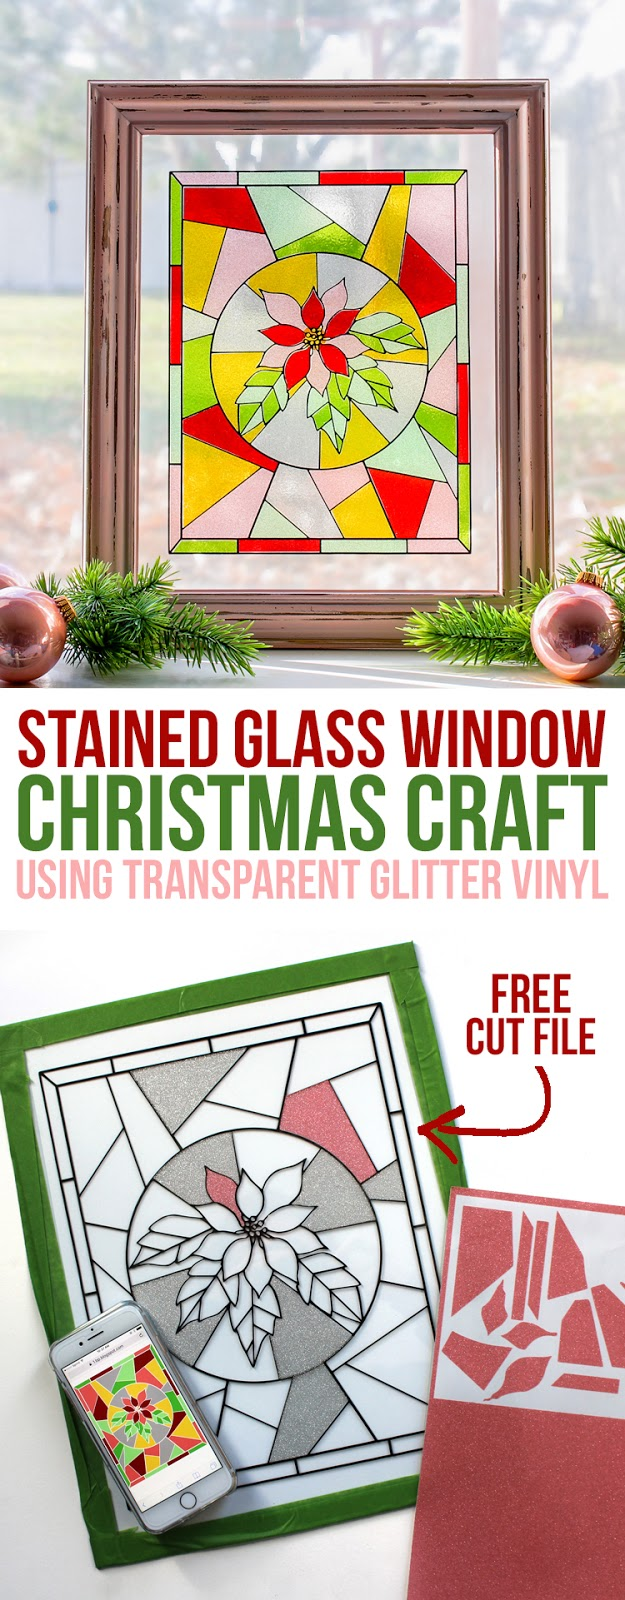 Create a beautiful faux stained glass Christmas window using transparent glitter craft vinyl. Christmas craft ideas from thecraftpatchblog.com #christmascrafts